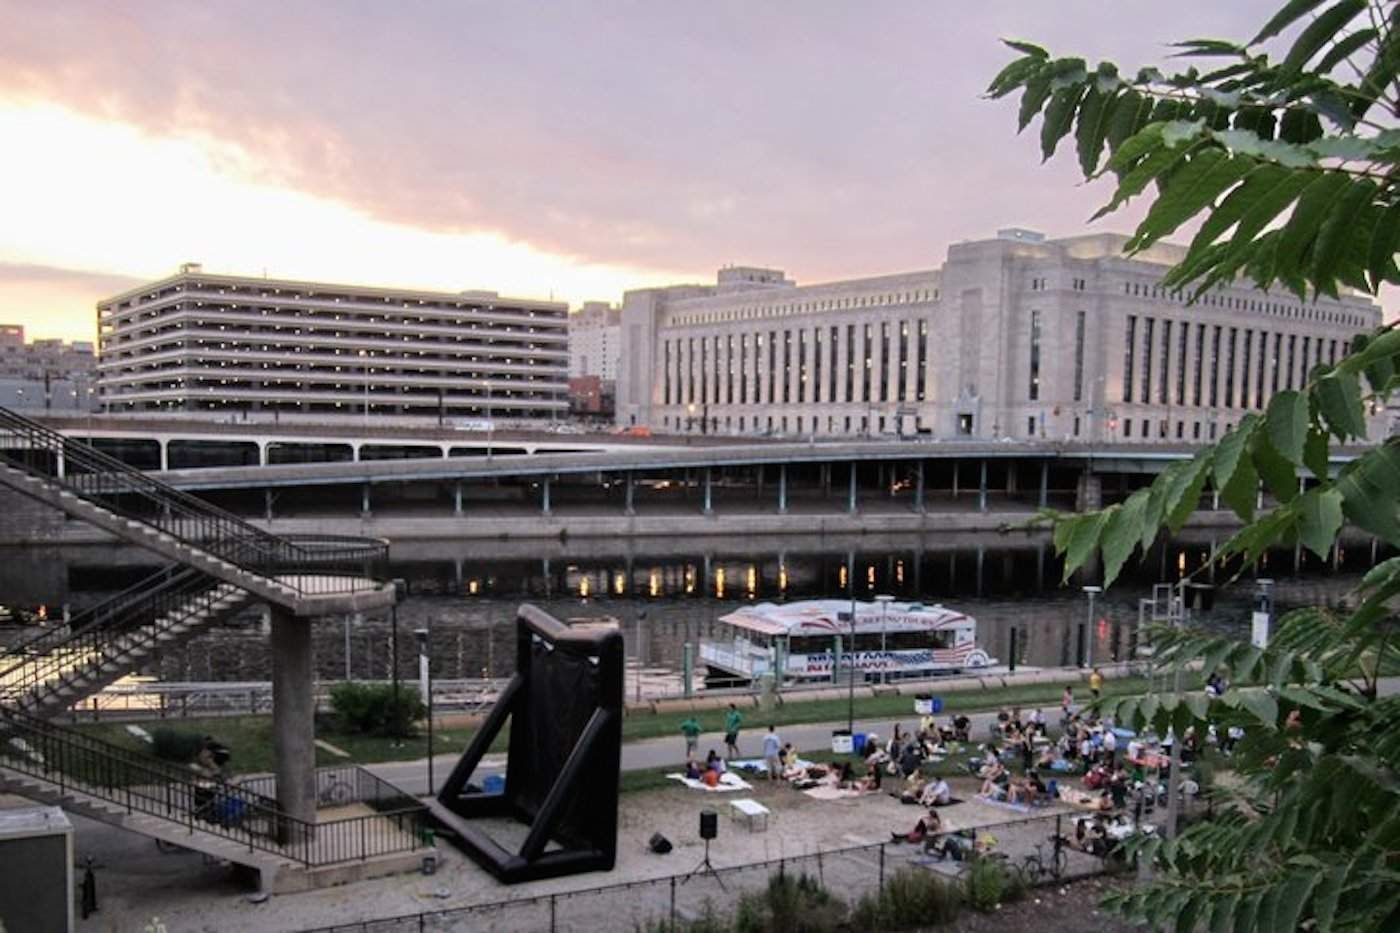 Every outdoor movie screening in philly this summer